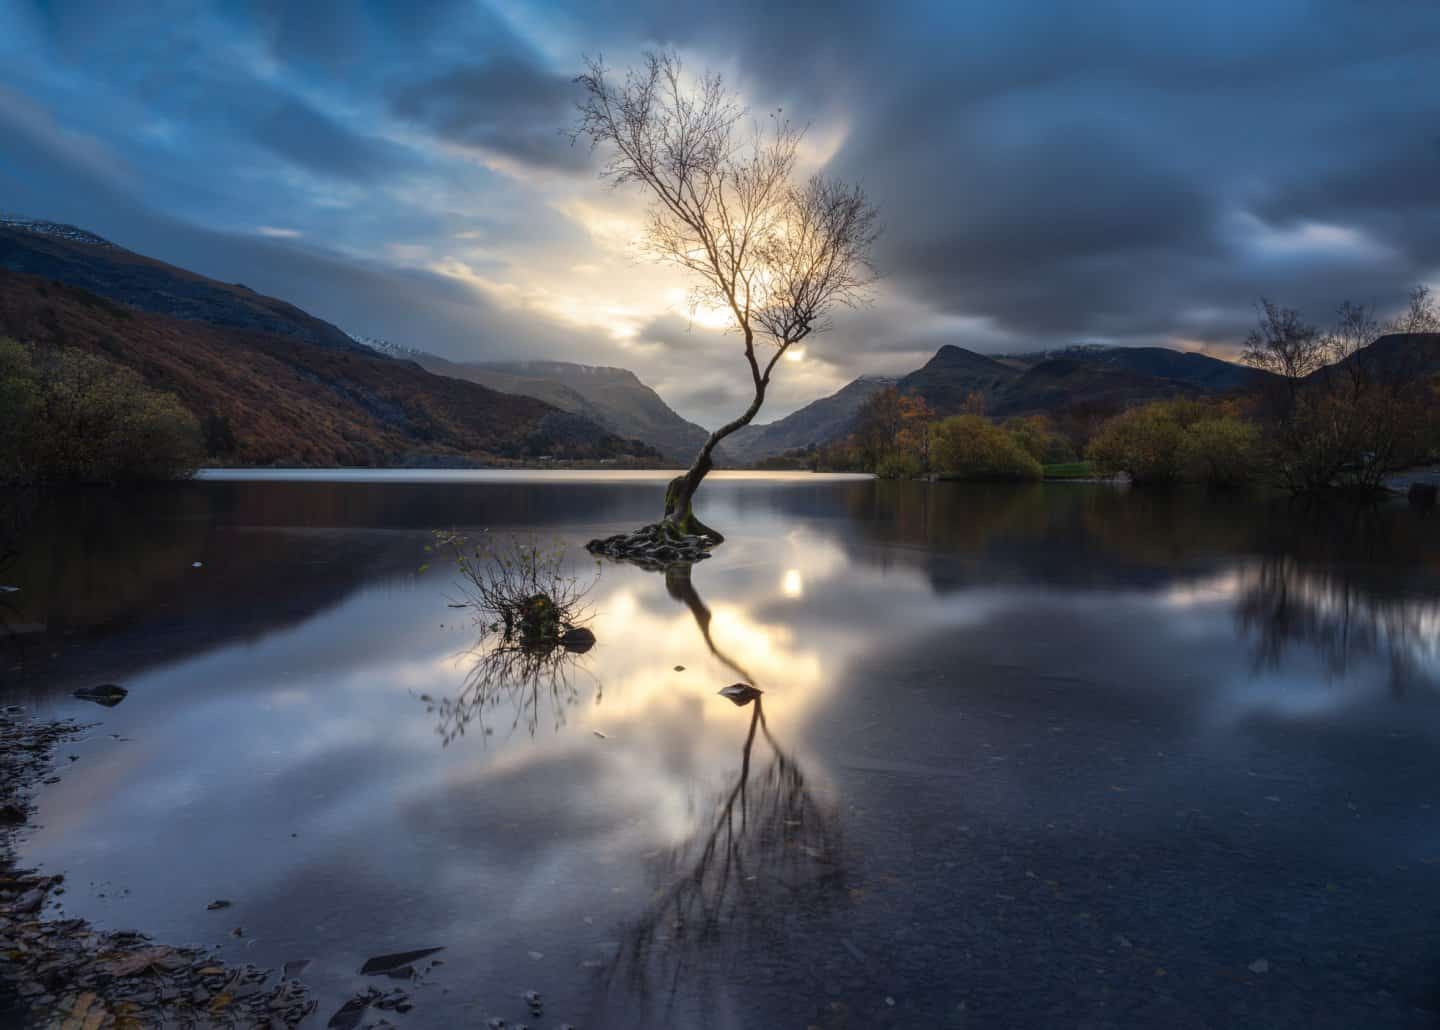 The #1 Snowdonia Photography location is the Lonely Tree of Llyn Padarn.